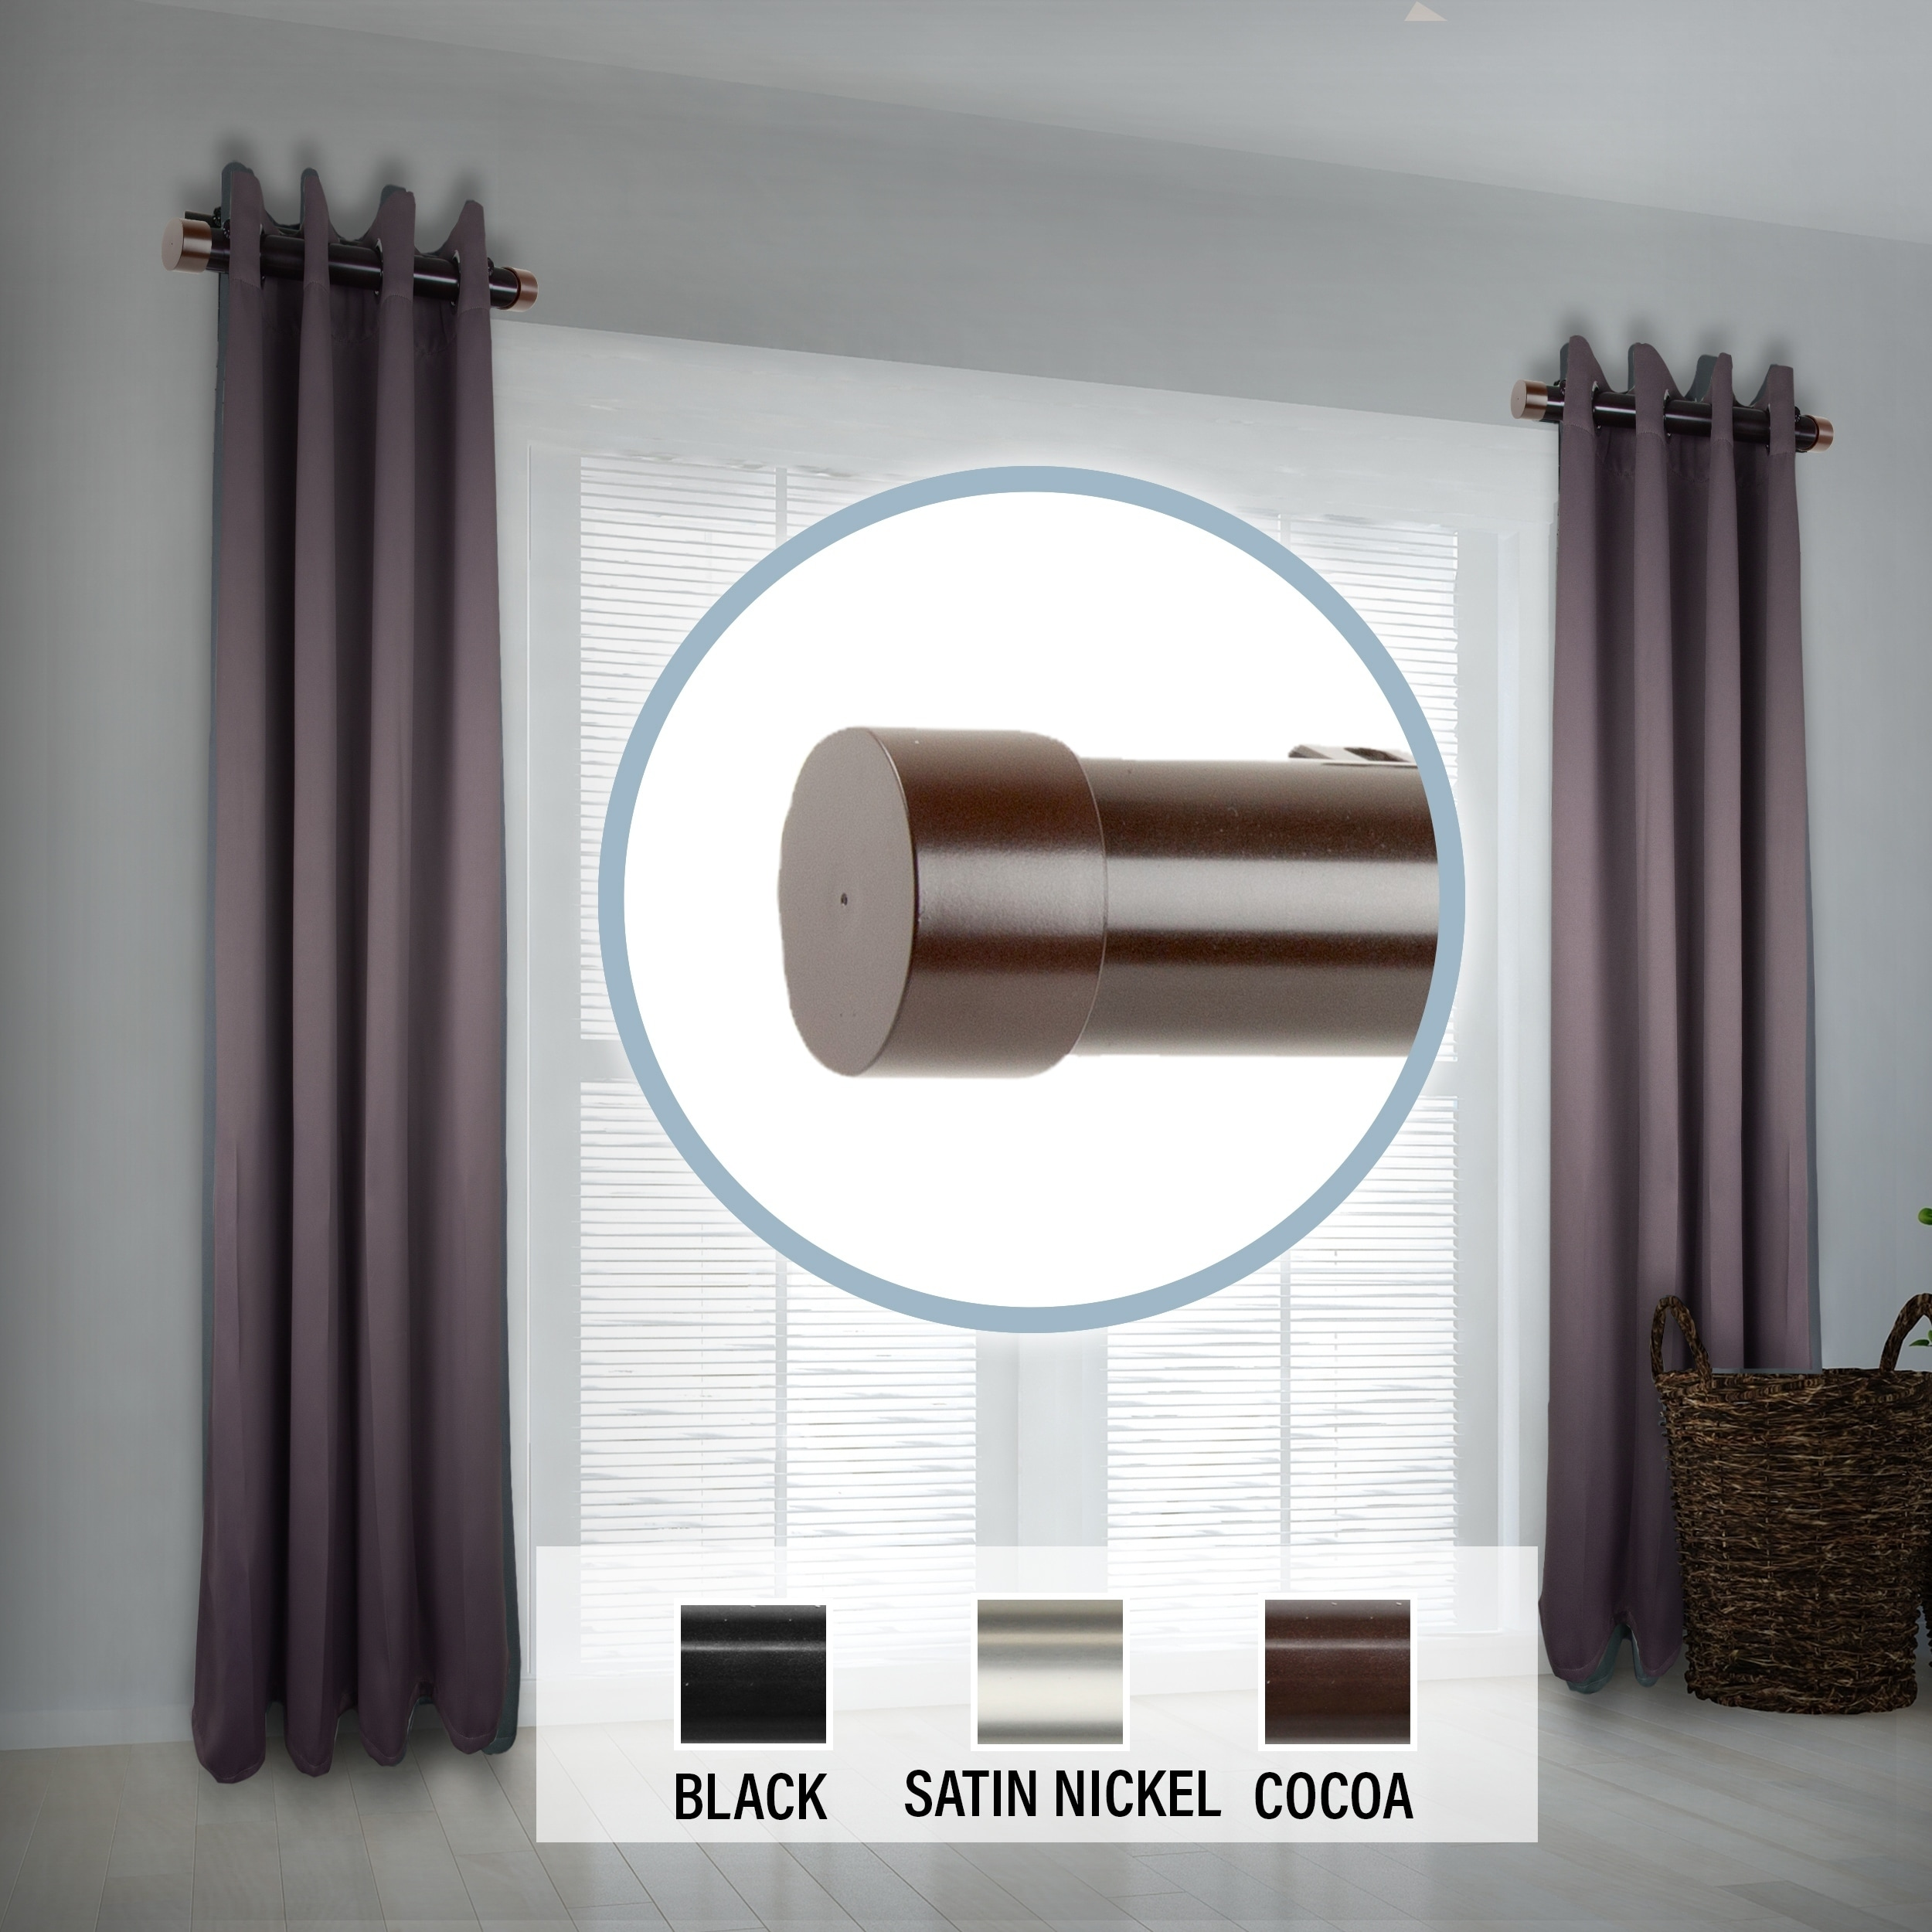 instyledesign 1 5 side curtain rod 12 20 inch long set of 2 12 to 20 inches